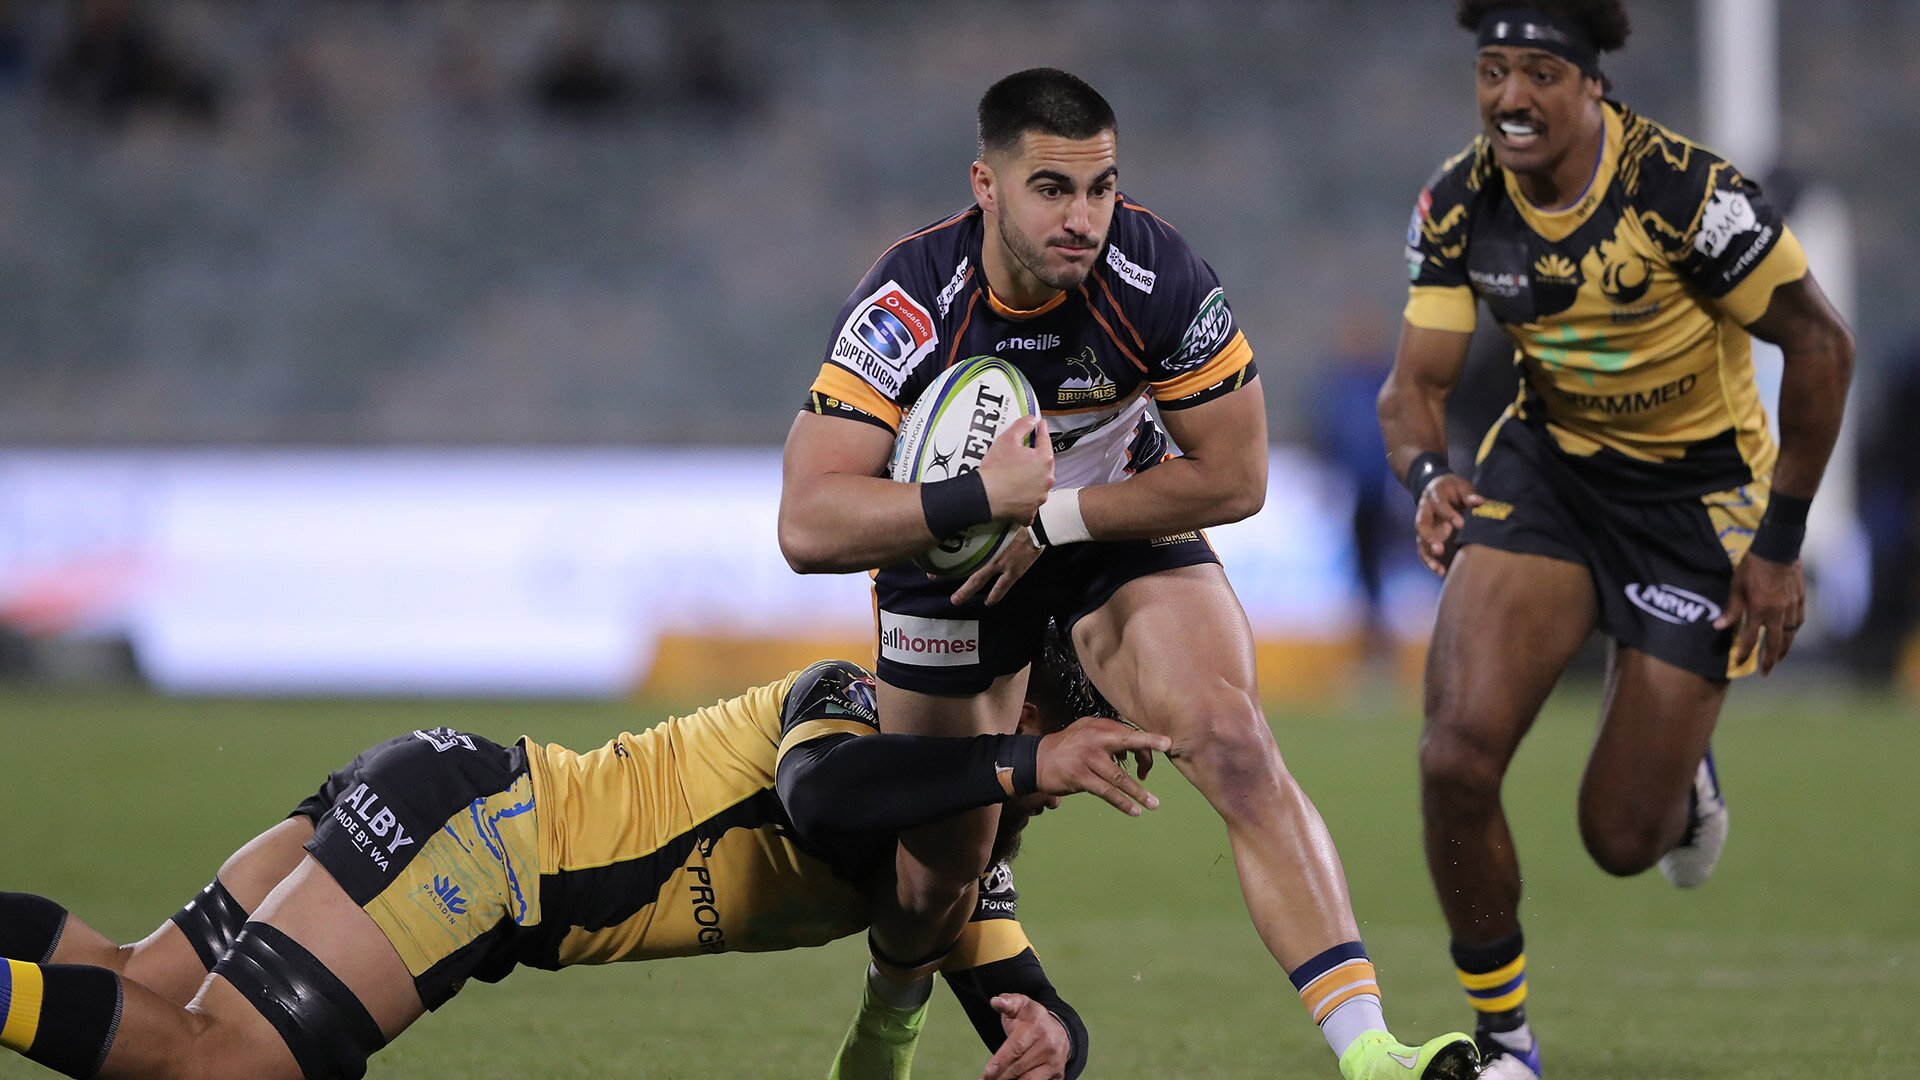 Former NRL star sets sights on Wallabies wing spot as Dave Rennie's side prepares to enter New Zealand